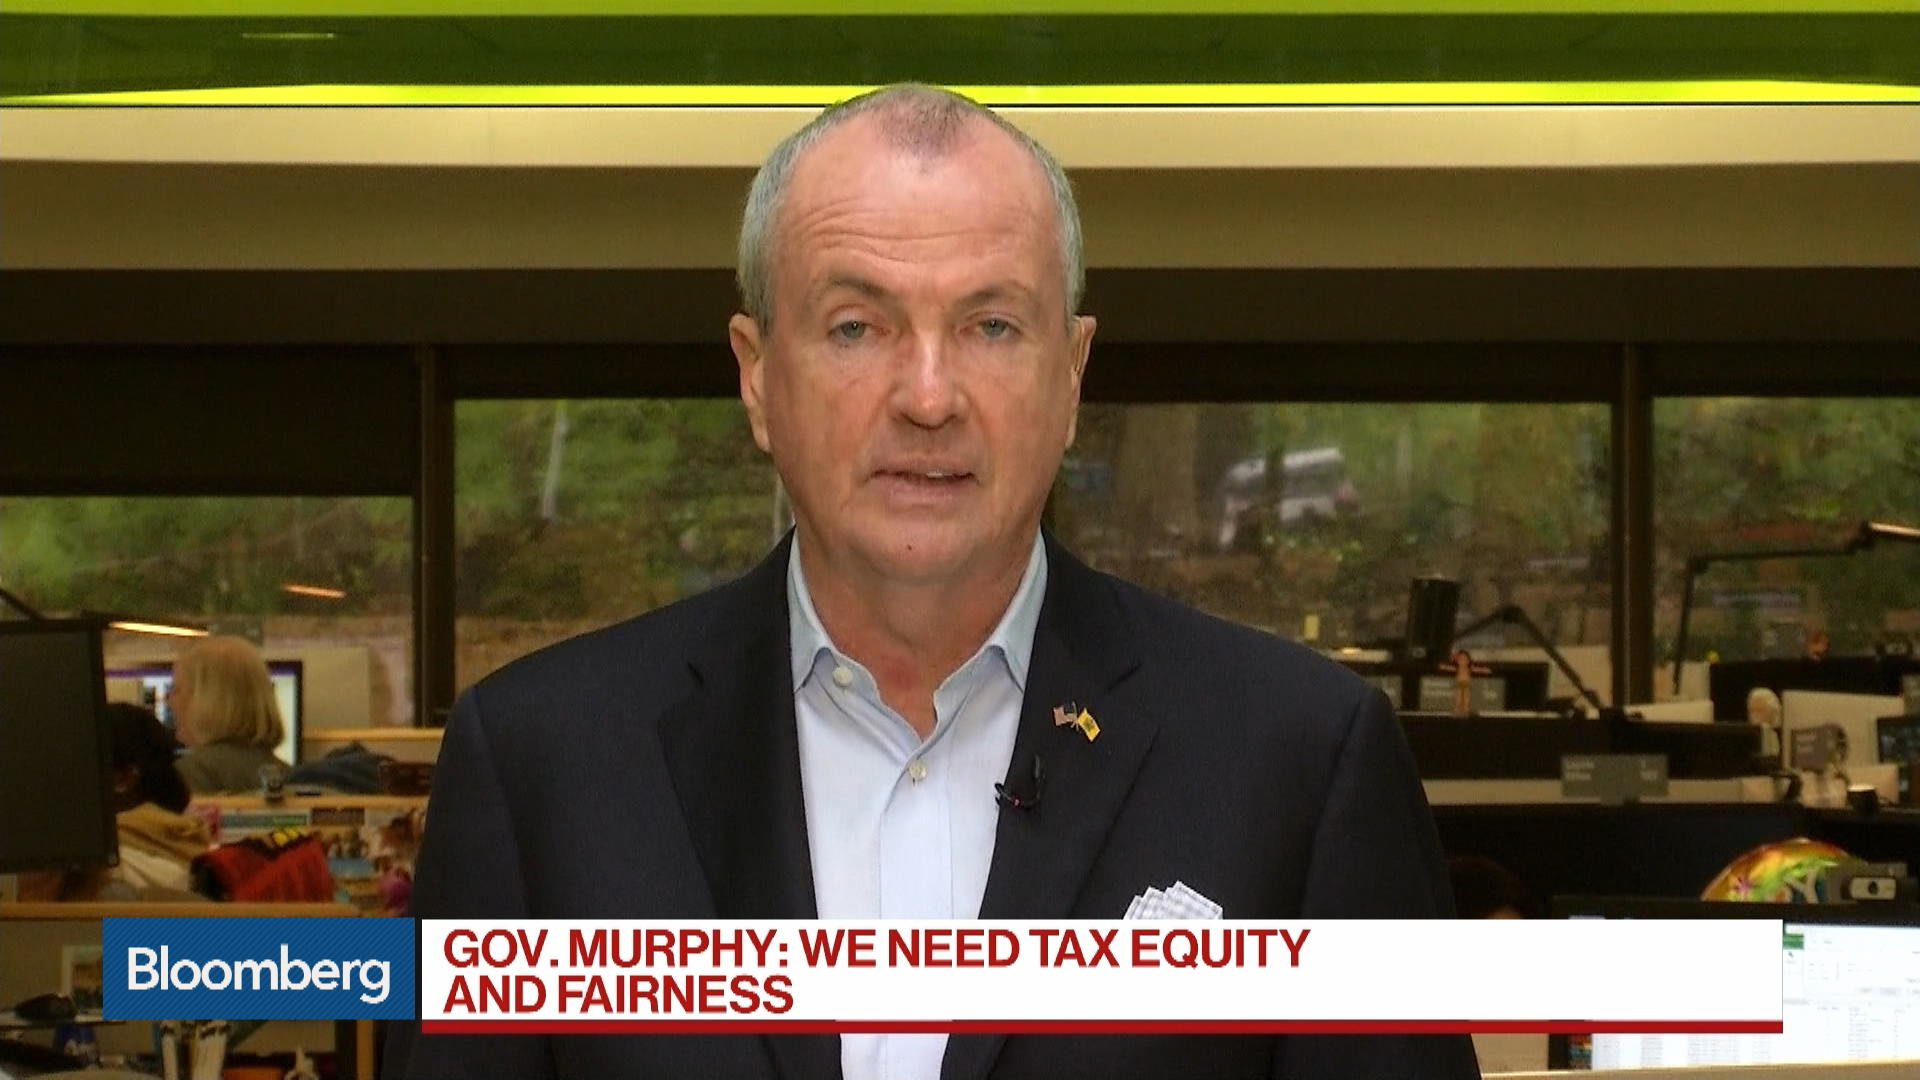 N.J. Governor Murphy on Tax Policy, Pension Reform and NJ Transit